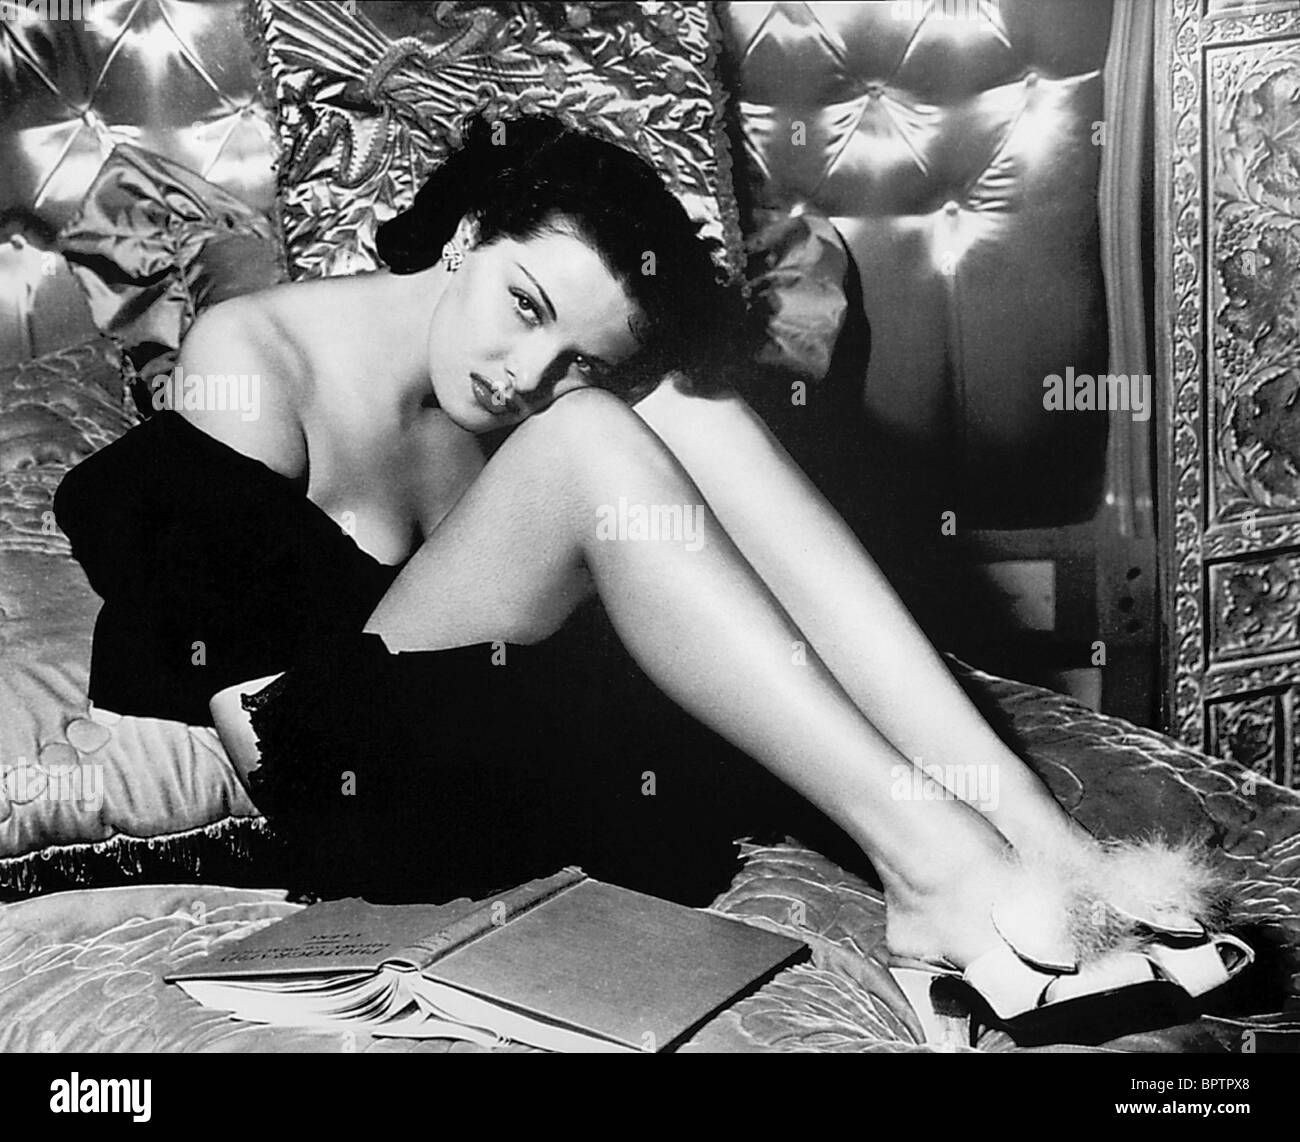 JANE RUSSELL ACTRESS (1940) - Stock Image